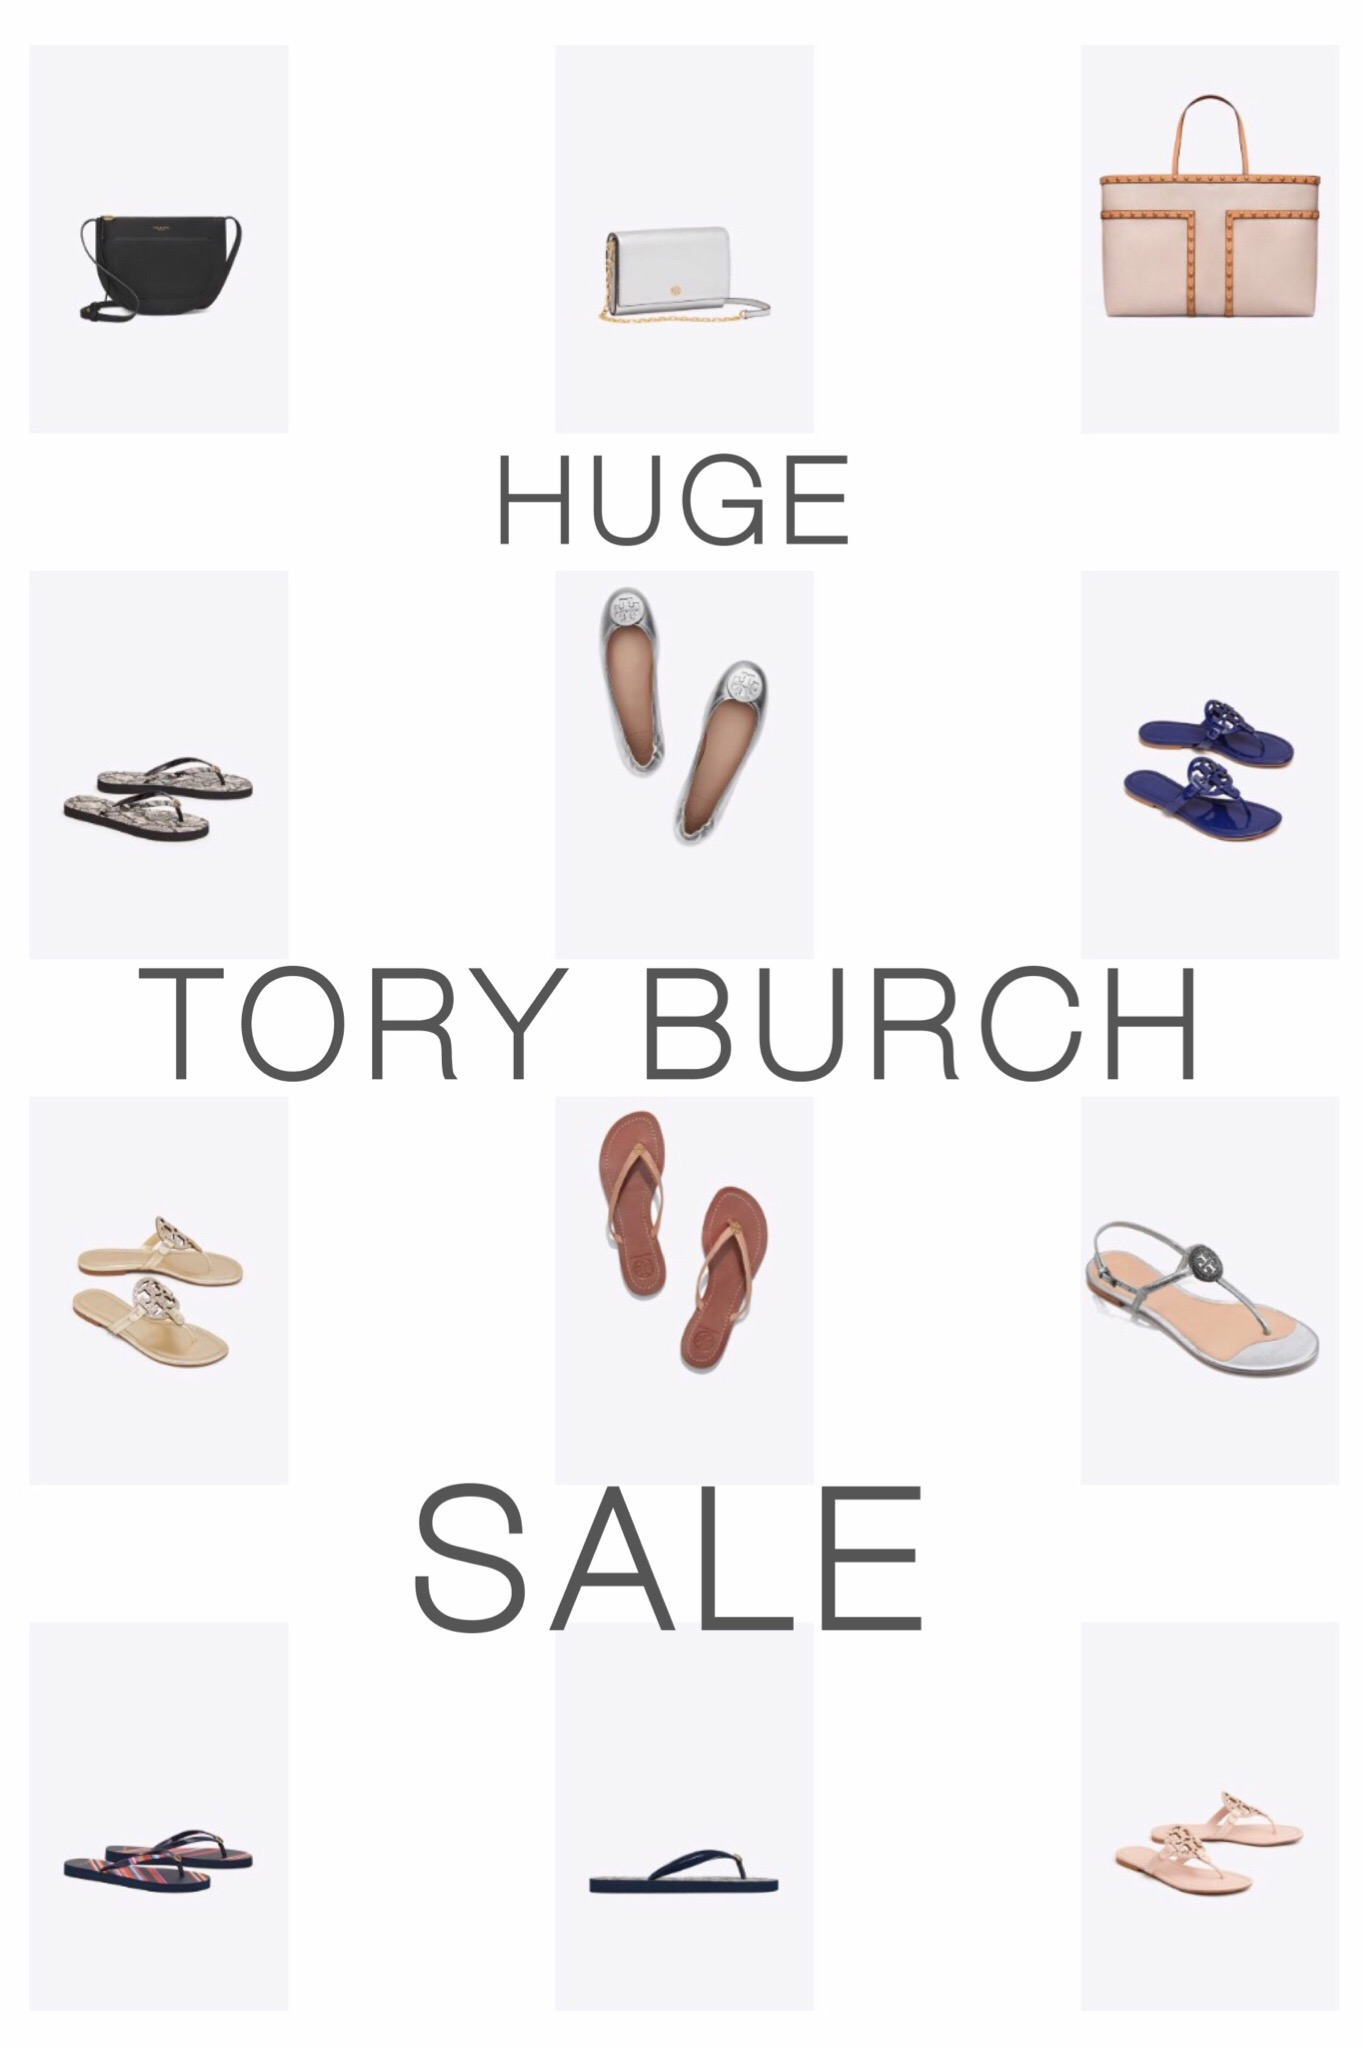 479cd74b5900 HUGE TORY BURCH SALE - House of Hargrove